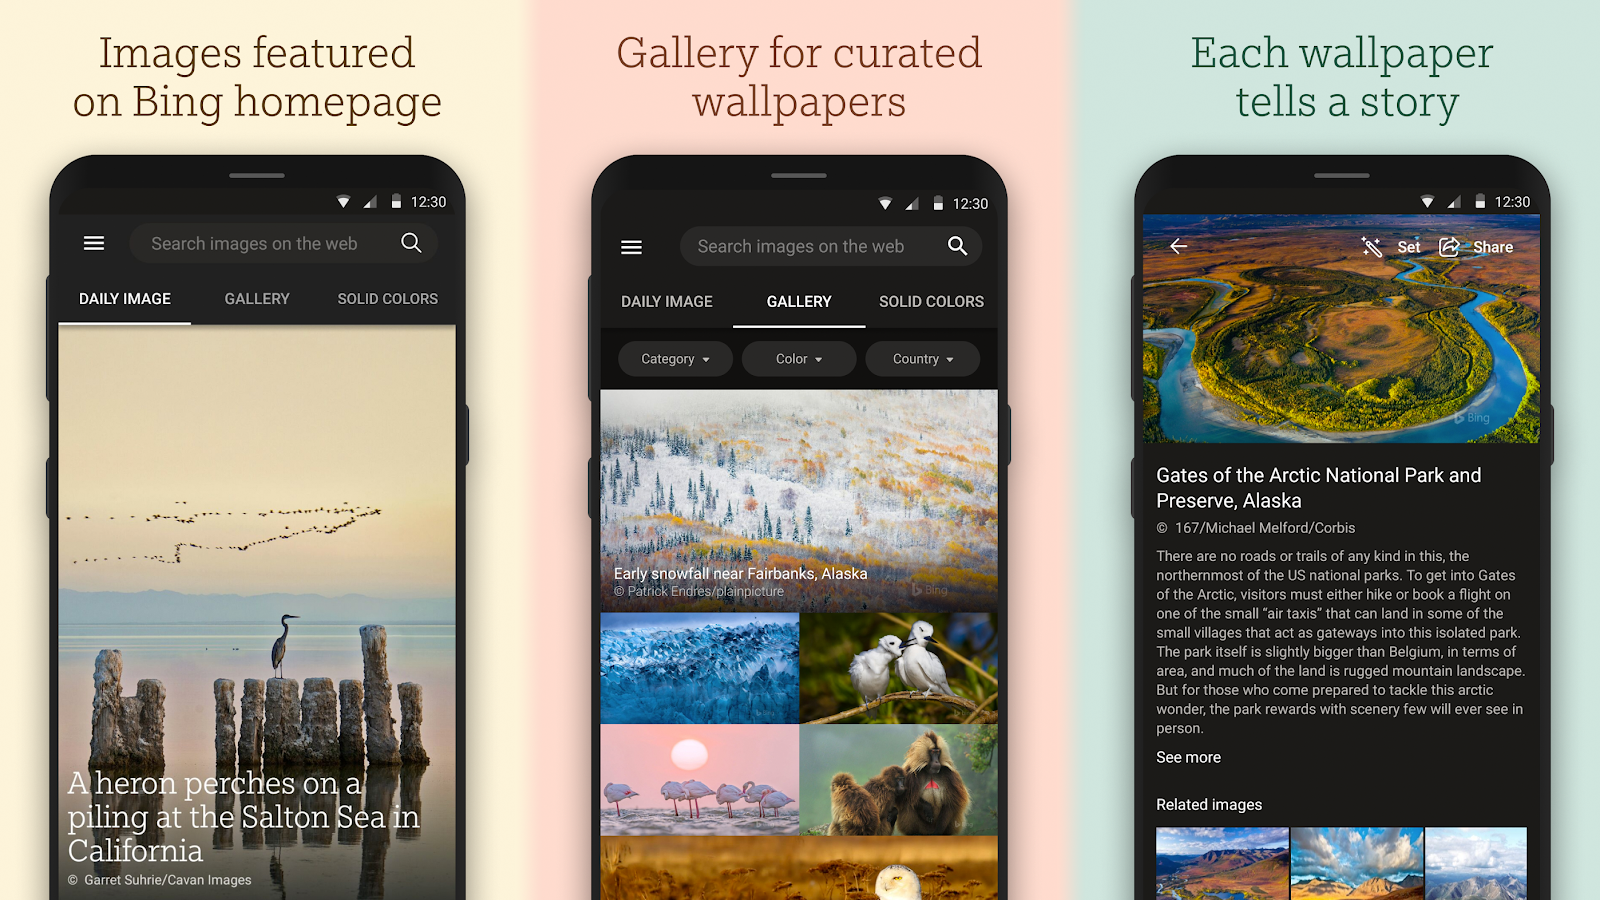 Bing Wallpapers App Launches With Daily Updates To Your Background